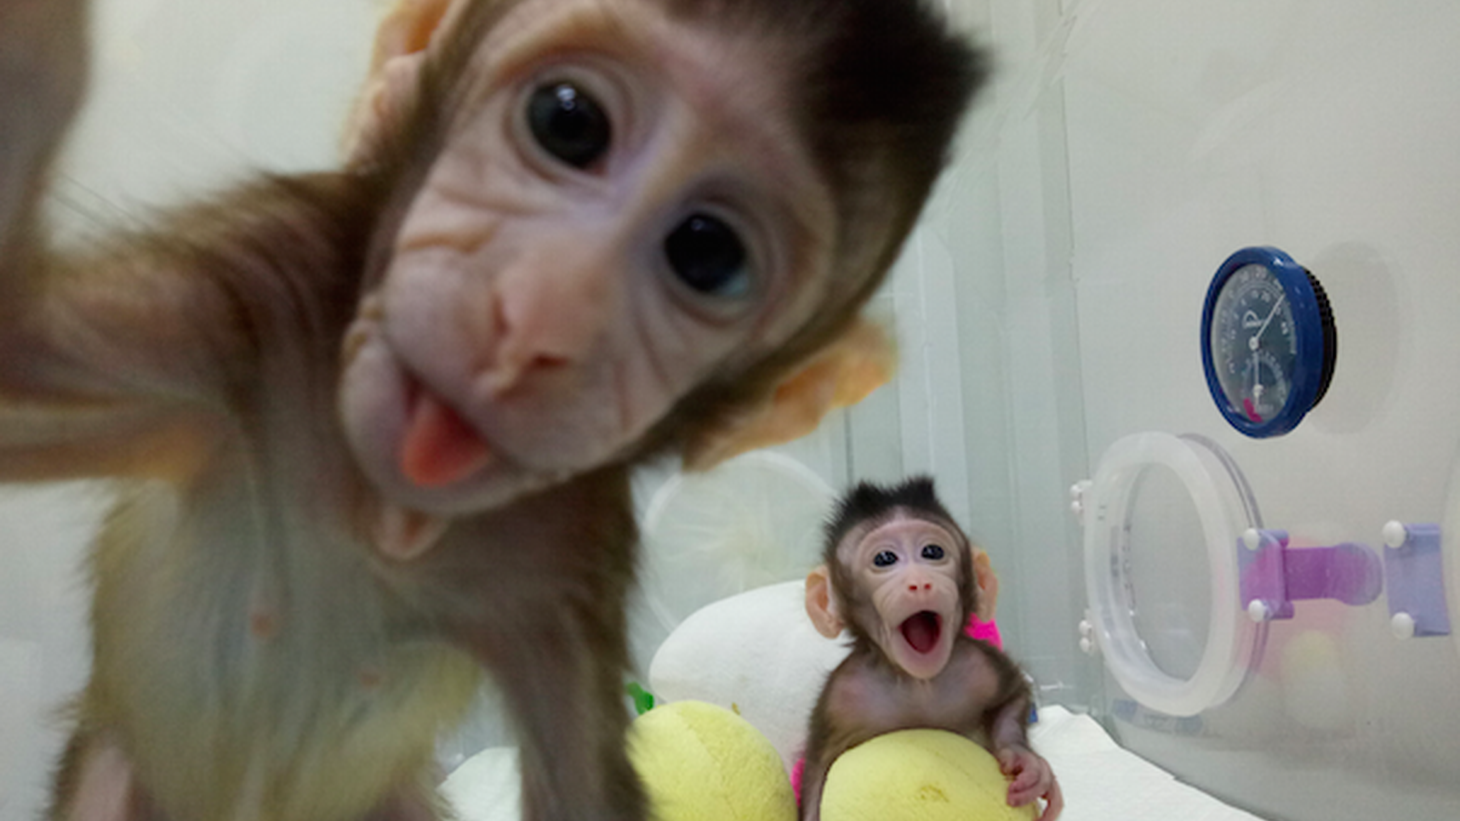 Zhong Zhong and Hua Hua are two monkey clones in China. It's the first time researchers have cloned a primate, and it could lead to major medical advances.